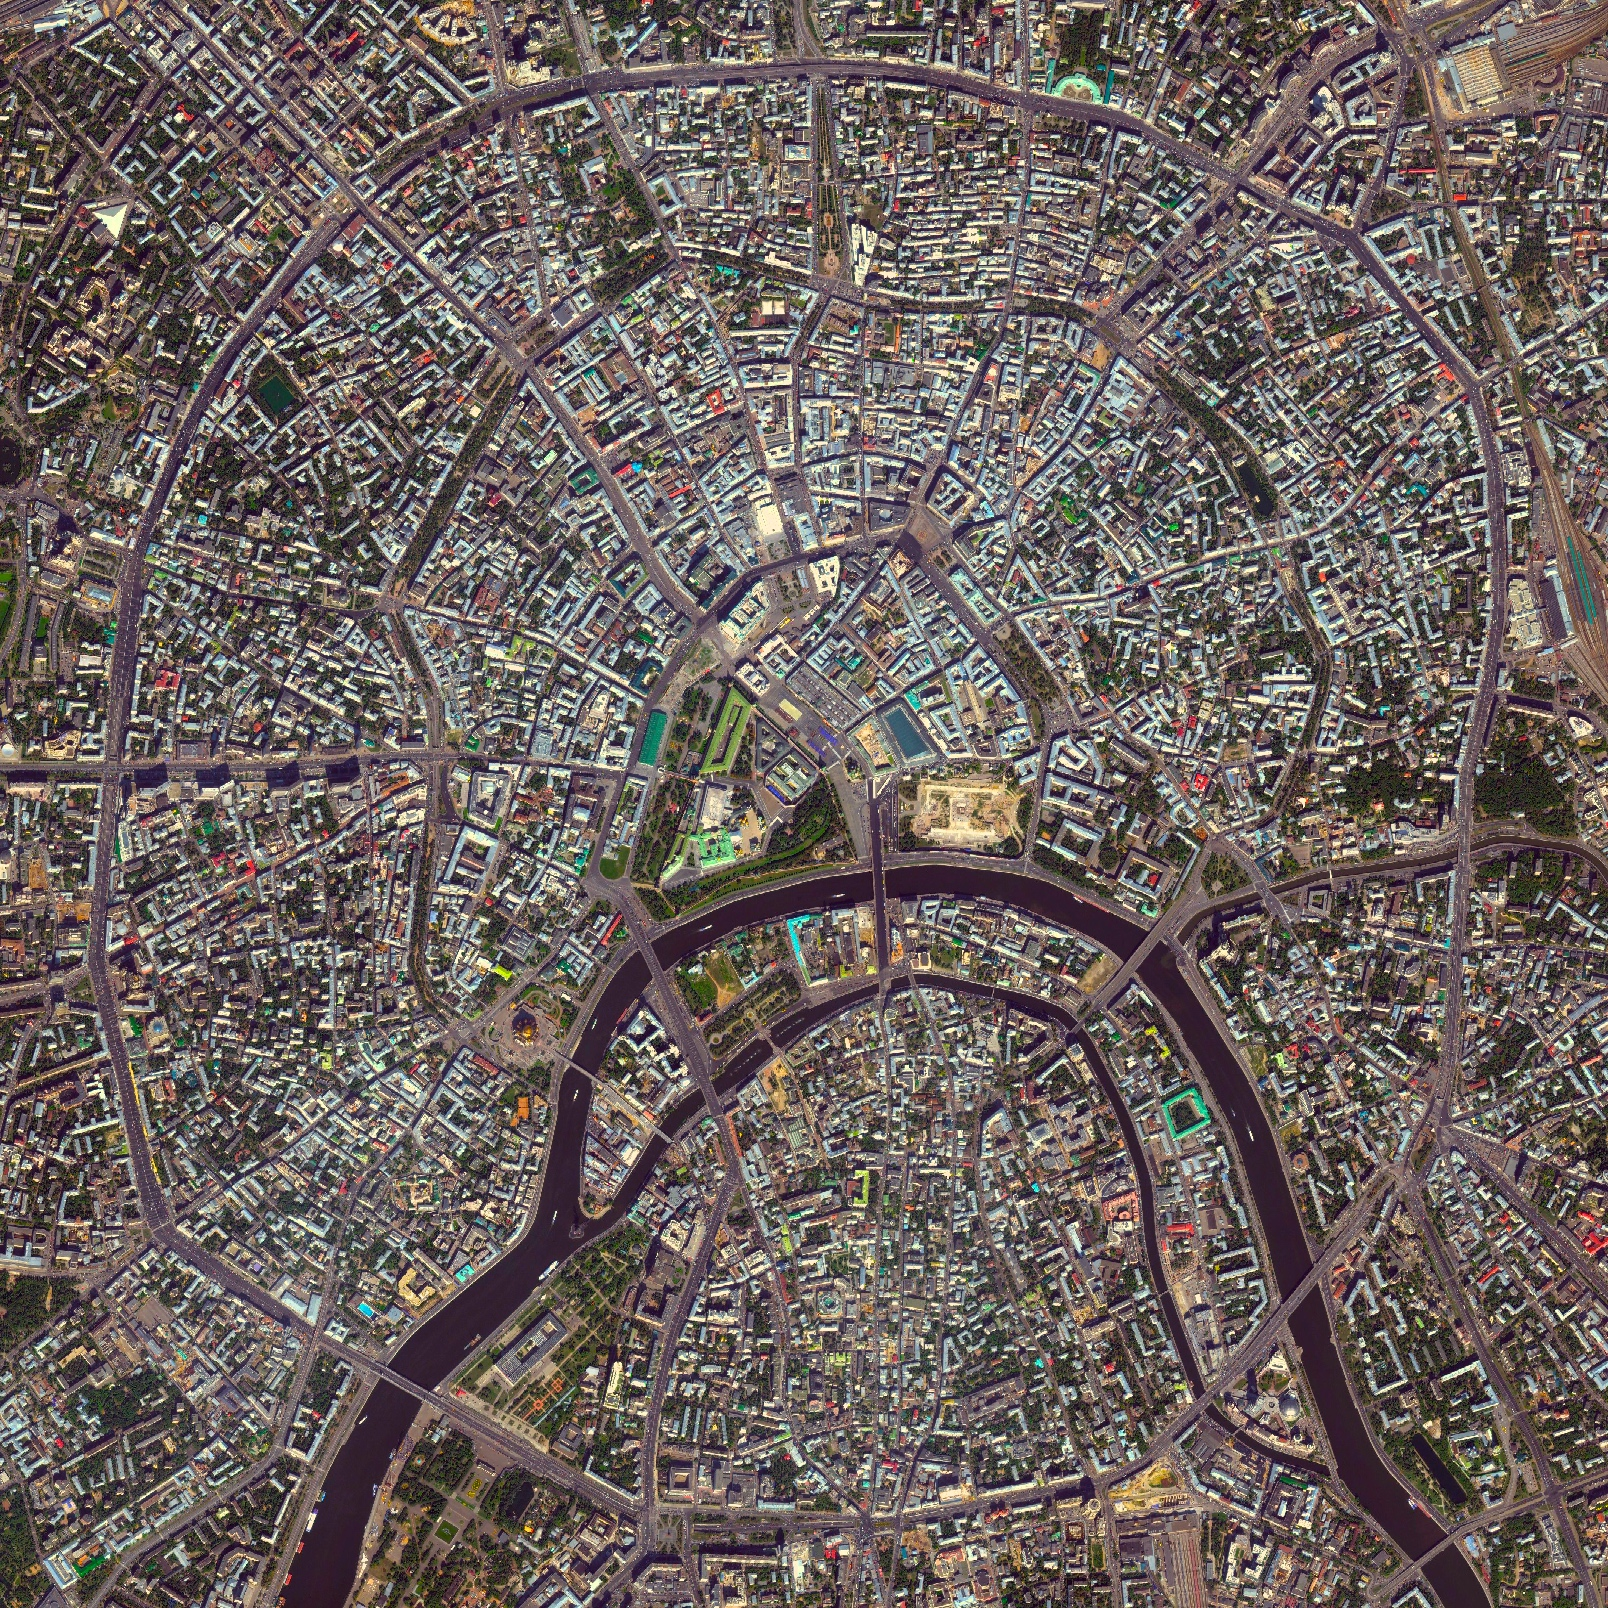 1/11/2016   Moscow   Moscow, Russia  55°45′N 37°37′E    Moscow is the capital and largest city in Russia with 12.2 million residents. The city is organized into five concentric transportation rings that surround the Kremlin. The two innermost rings are seen here.